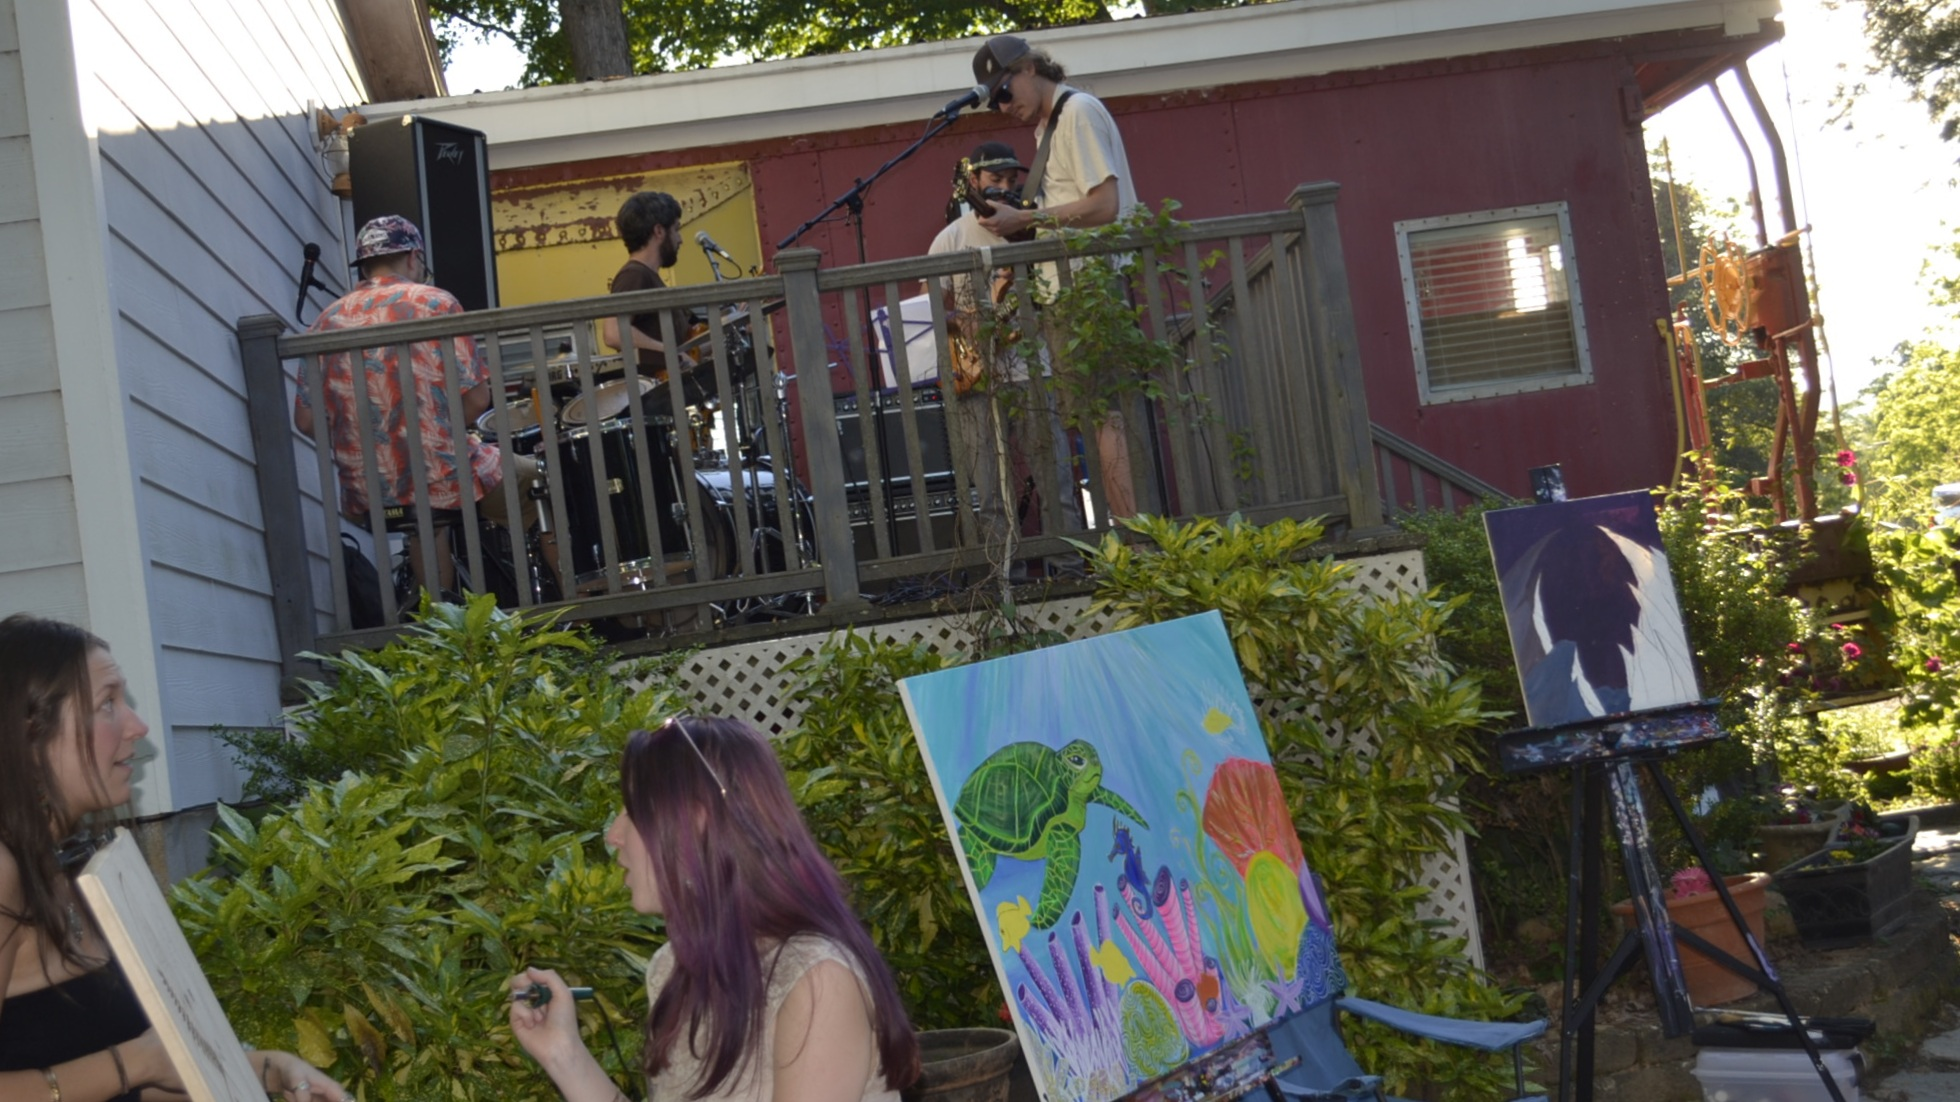 Book Your Event Here - This magical backyard has a deck perfect for live music, 1200 sq. feet of rock terrace, a rec barn, ping pong table, lawn games, hot tub, and a converted school bus-turned-RV that doubles as a podcast studio and hangout space.